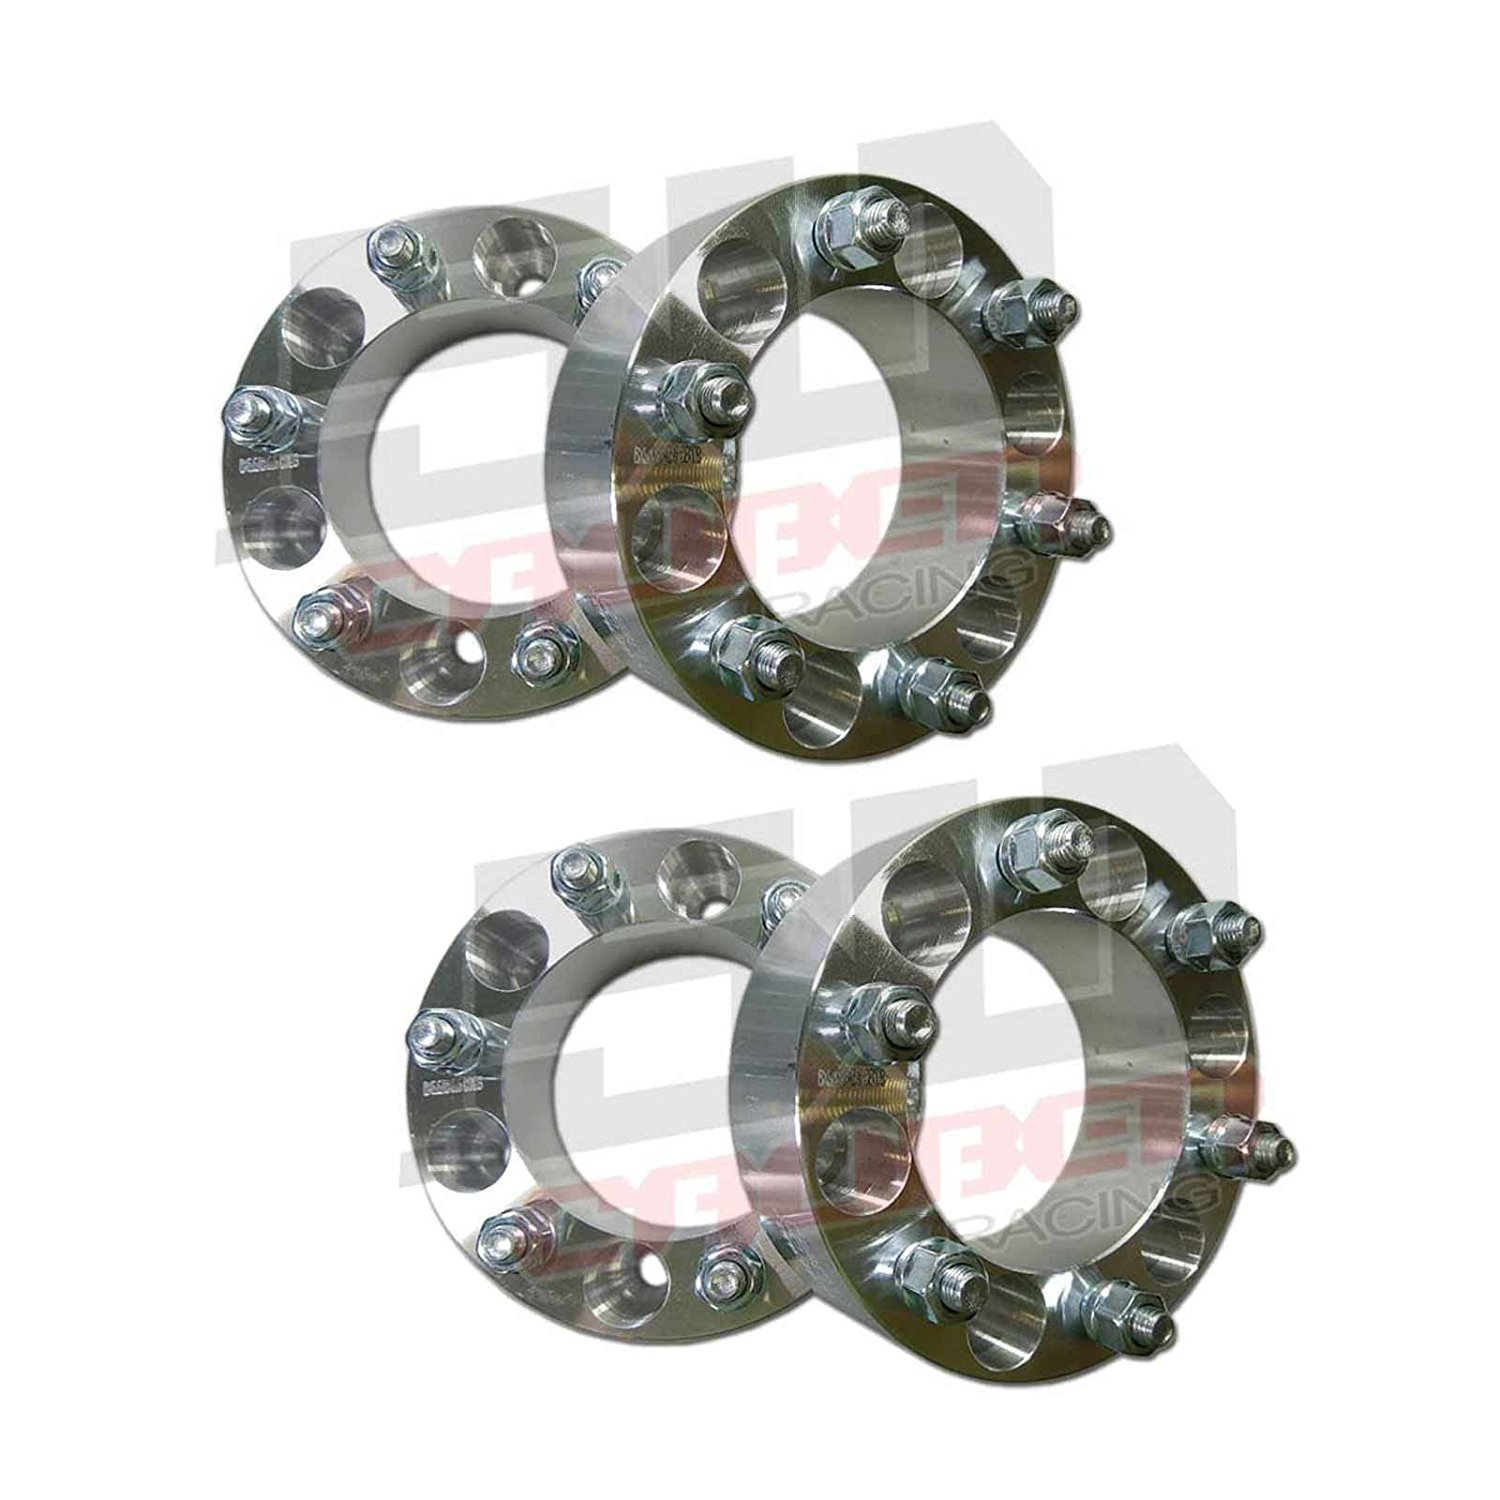 One Pair (2) of Wheel Spacers - 6 x 135mm Bolt Pattern, 2 Inch Thick , 14x2.0mm Studs – 04-Up 6 Lug Ford F-150 Raptor Expedition Lincoln Navigator Mark LT [5284-A34]